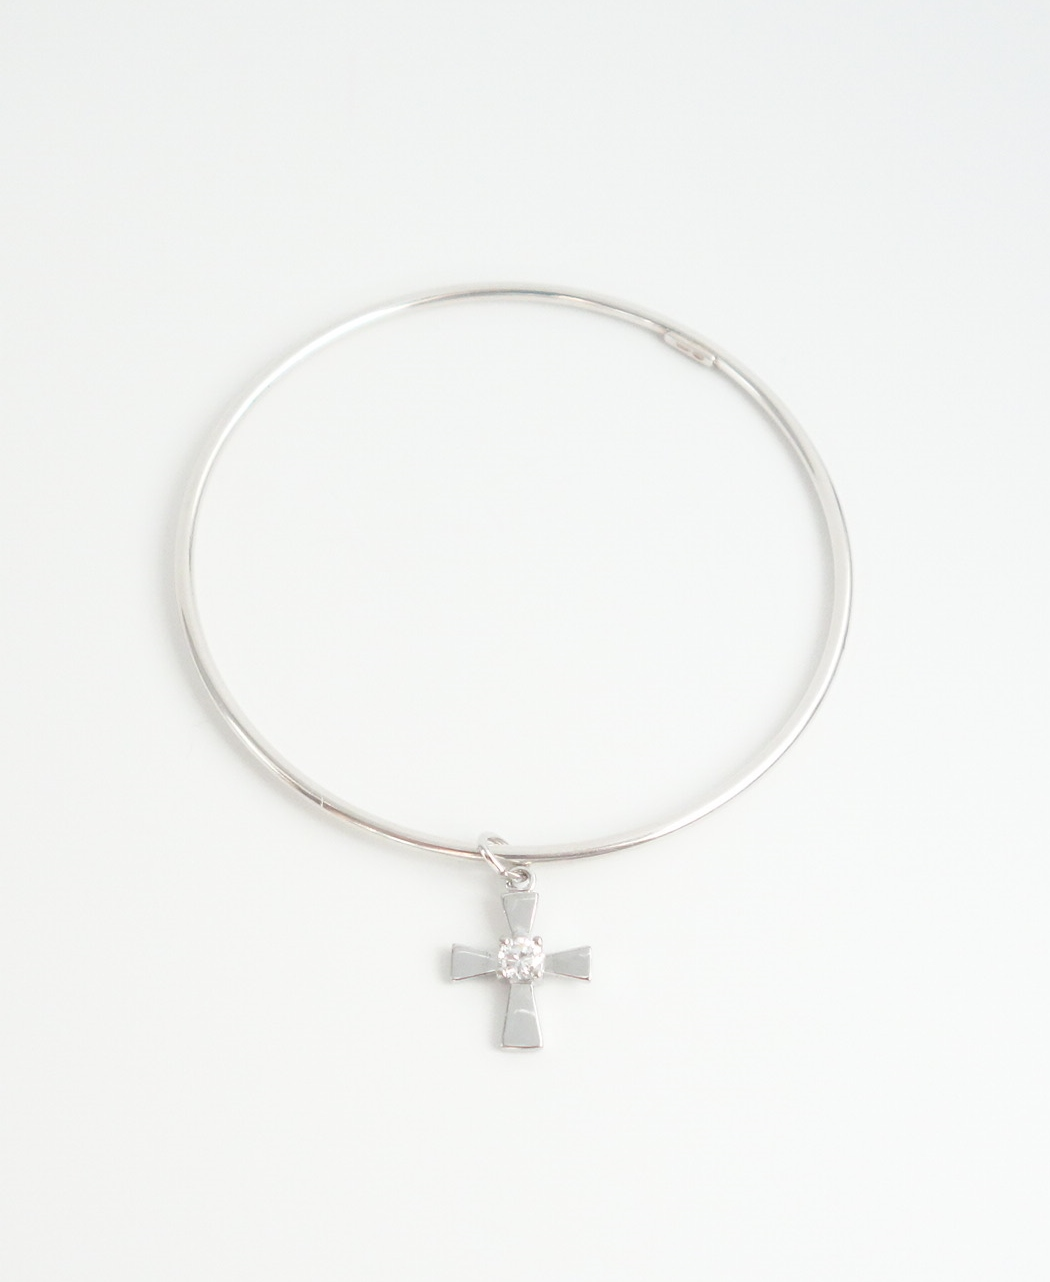 sterling silver bangle with cross charm